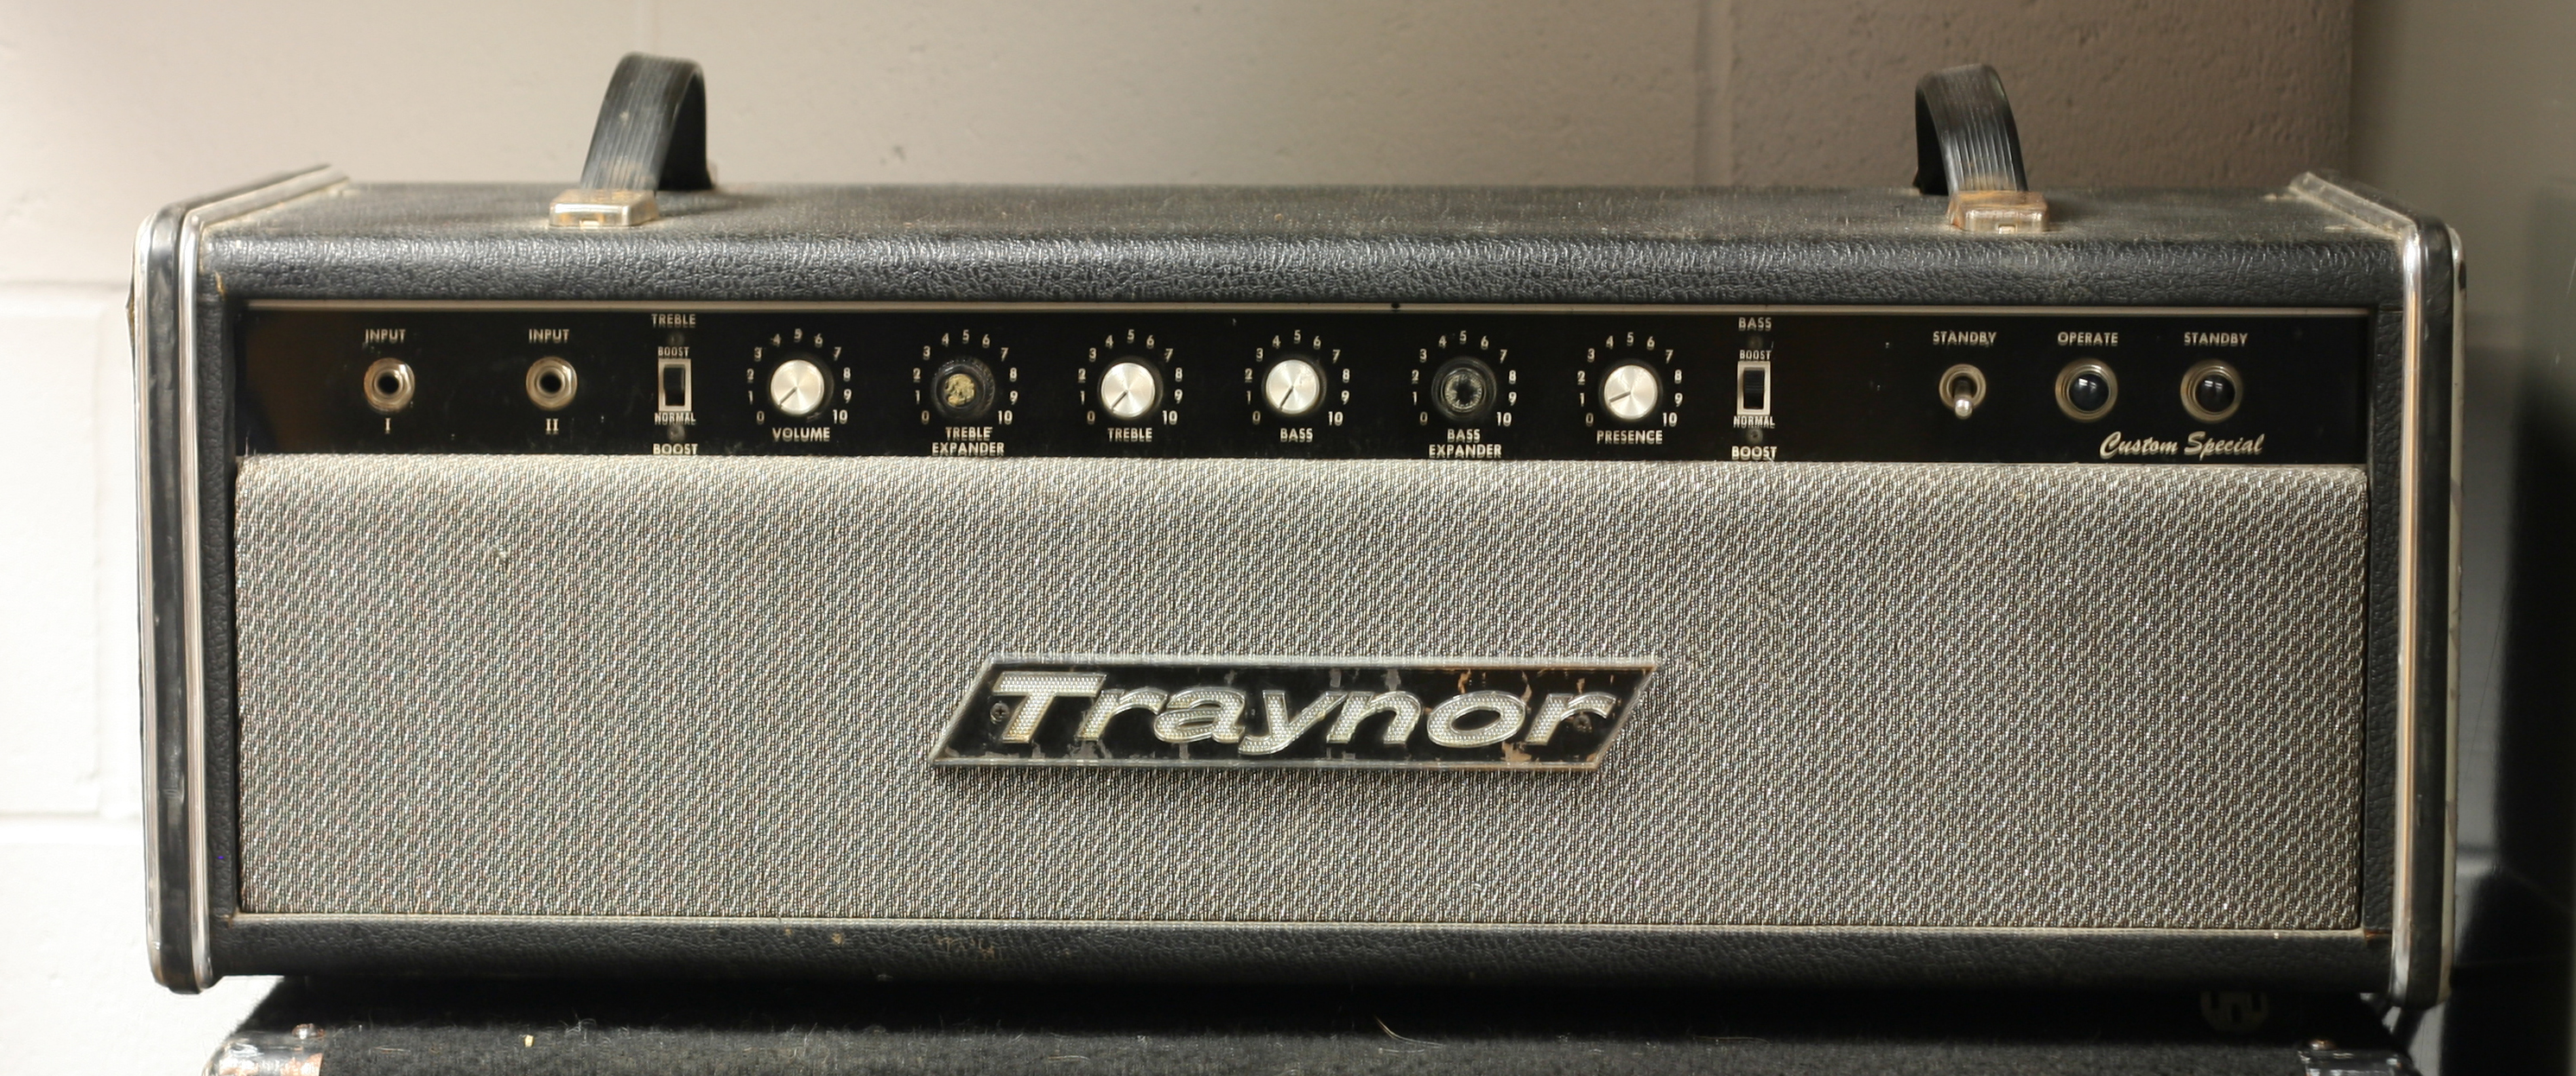 Traynor Amplifiers - Wikiwand